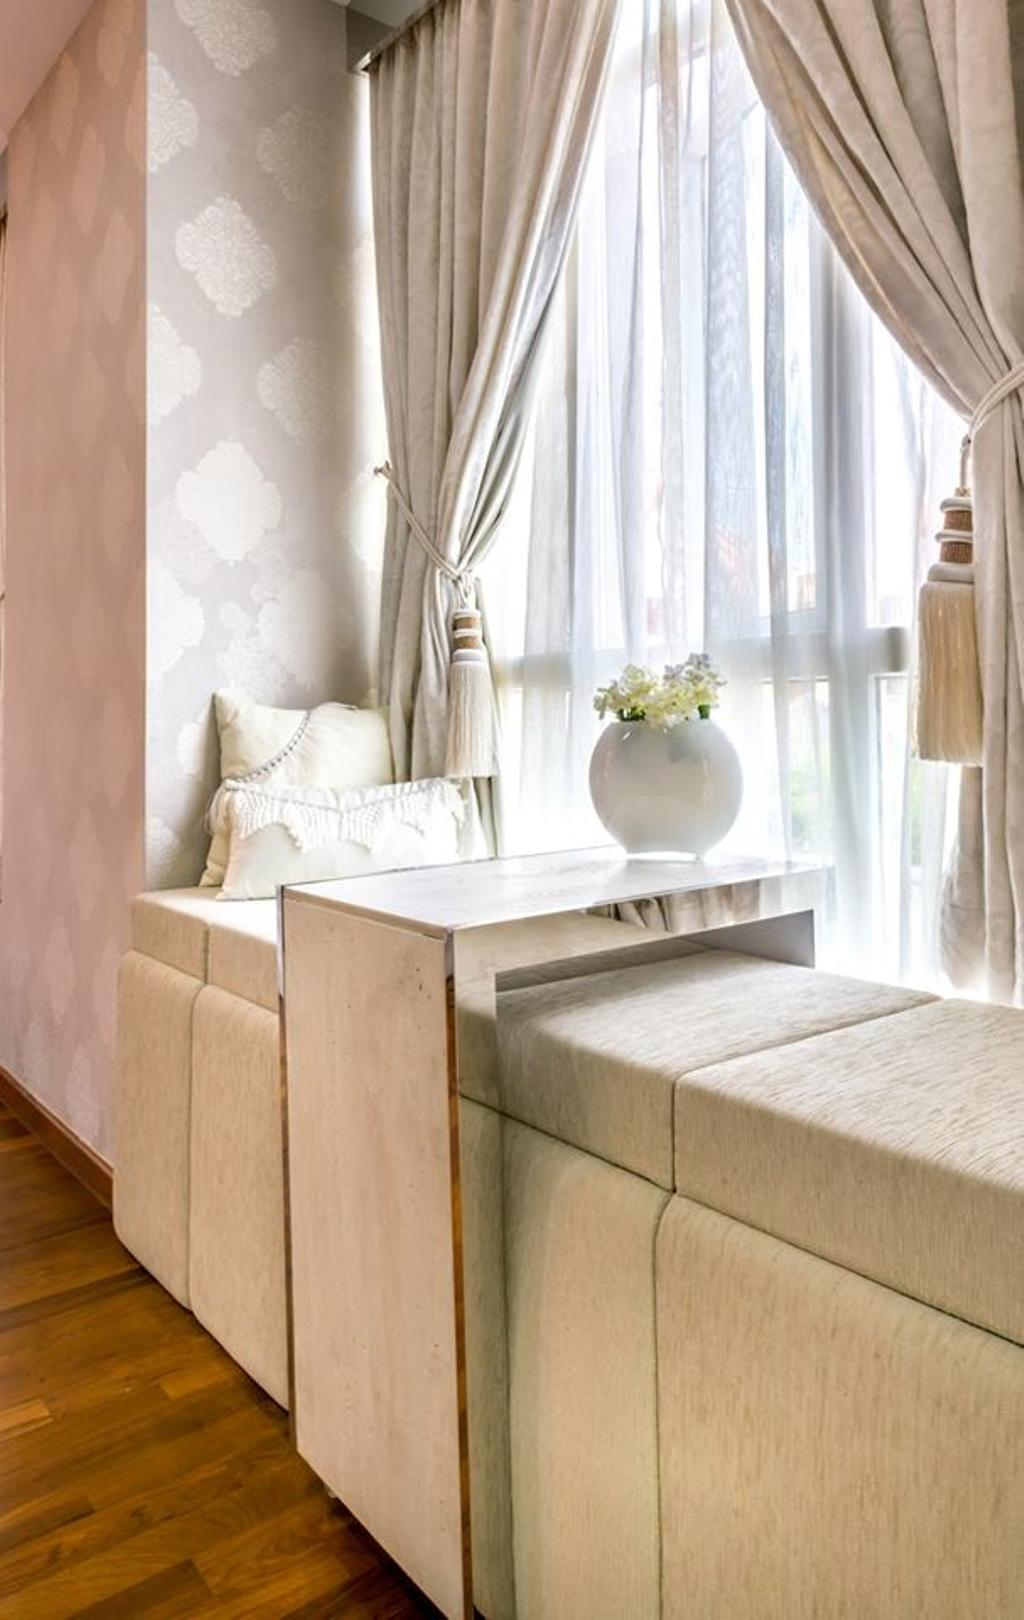 Transitional, Landed, Bedroom, Jalan Daud, Interior Designer, One Design Werkz, Wallpaper, Double Layer Curtains, Cushioned Bay Window Seats